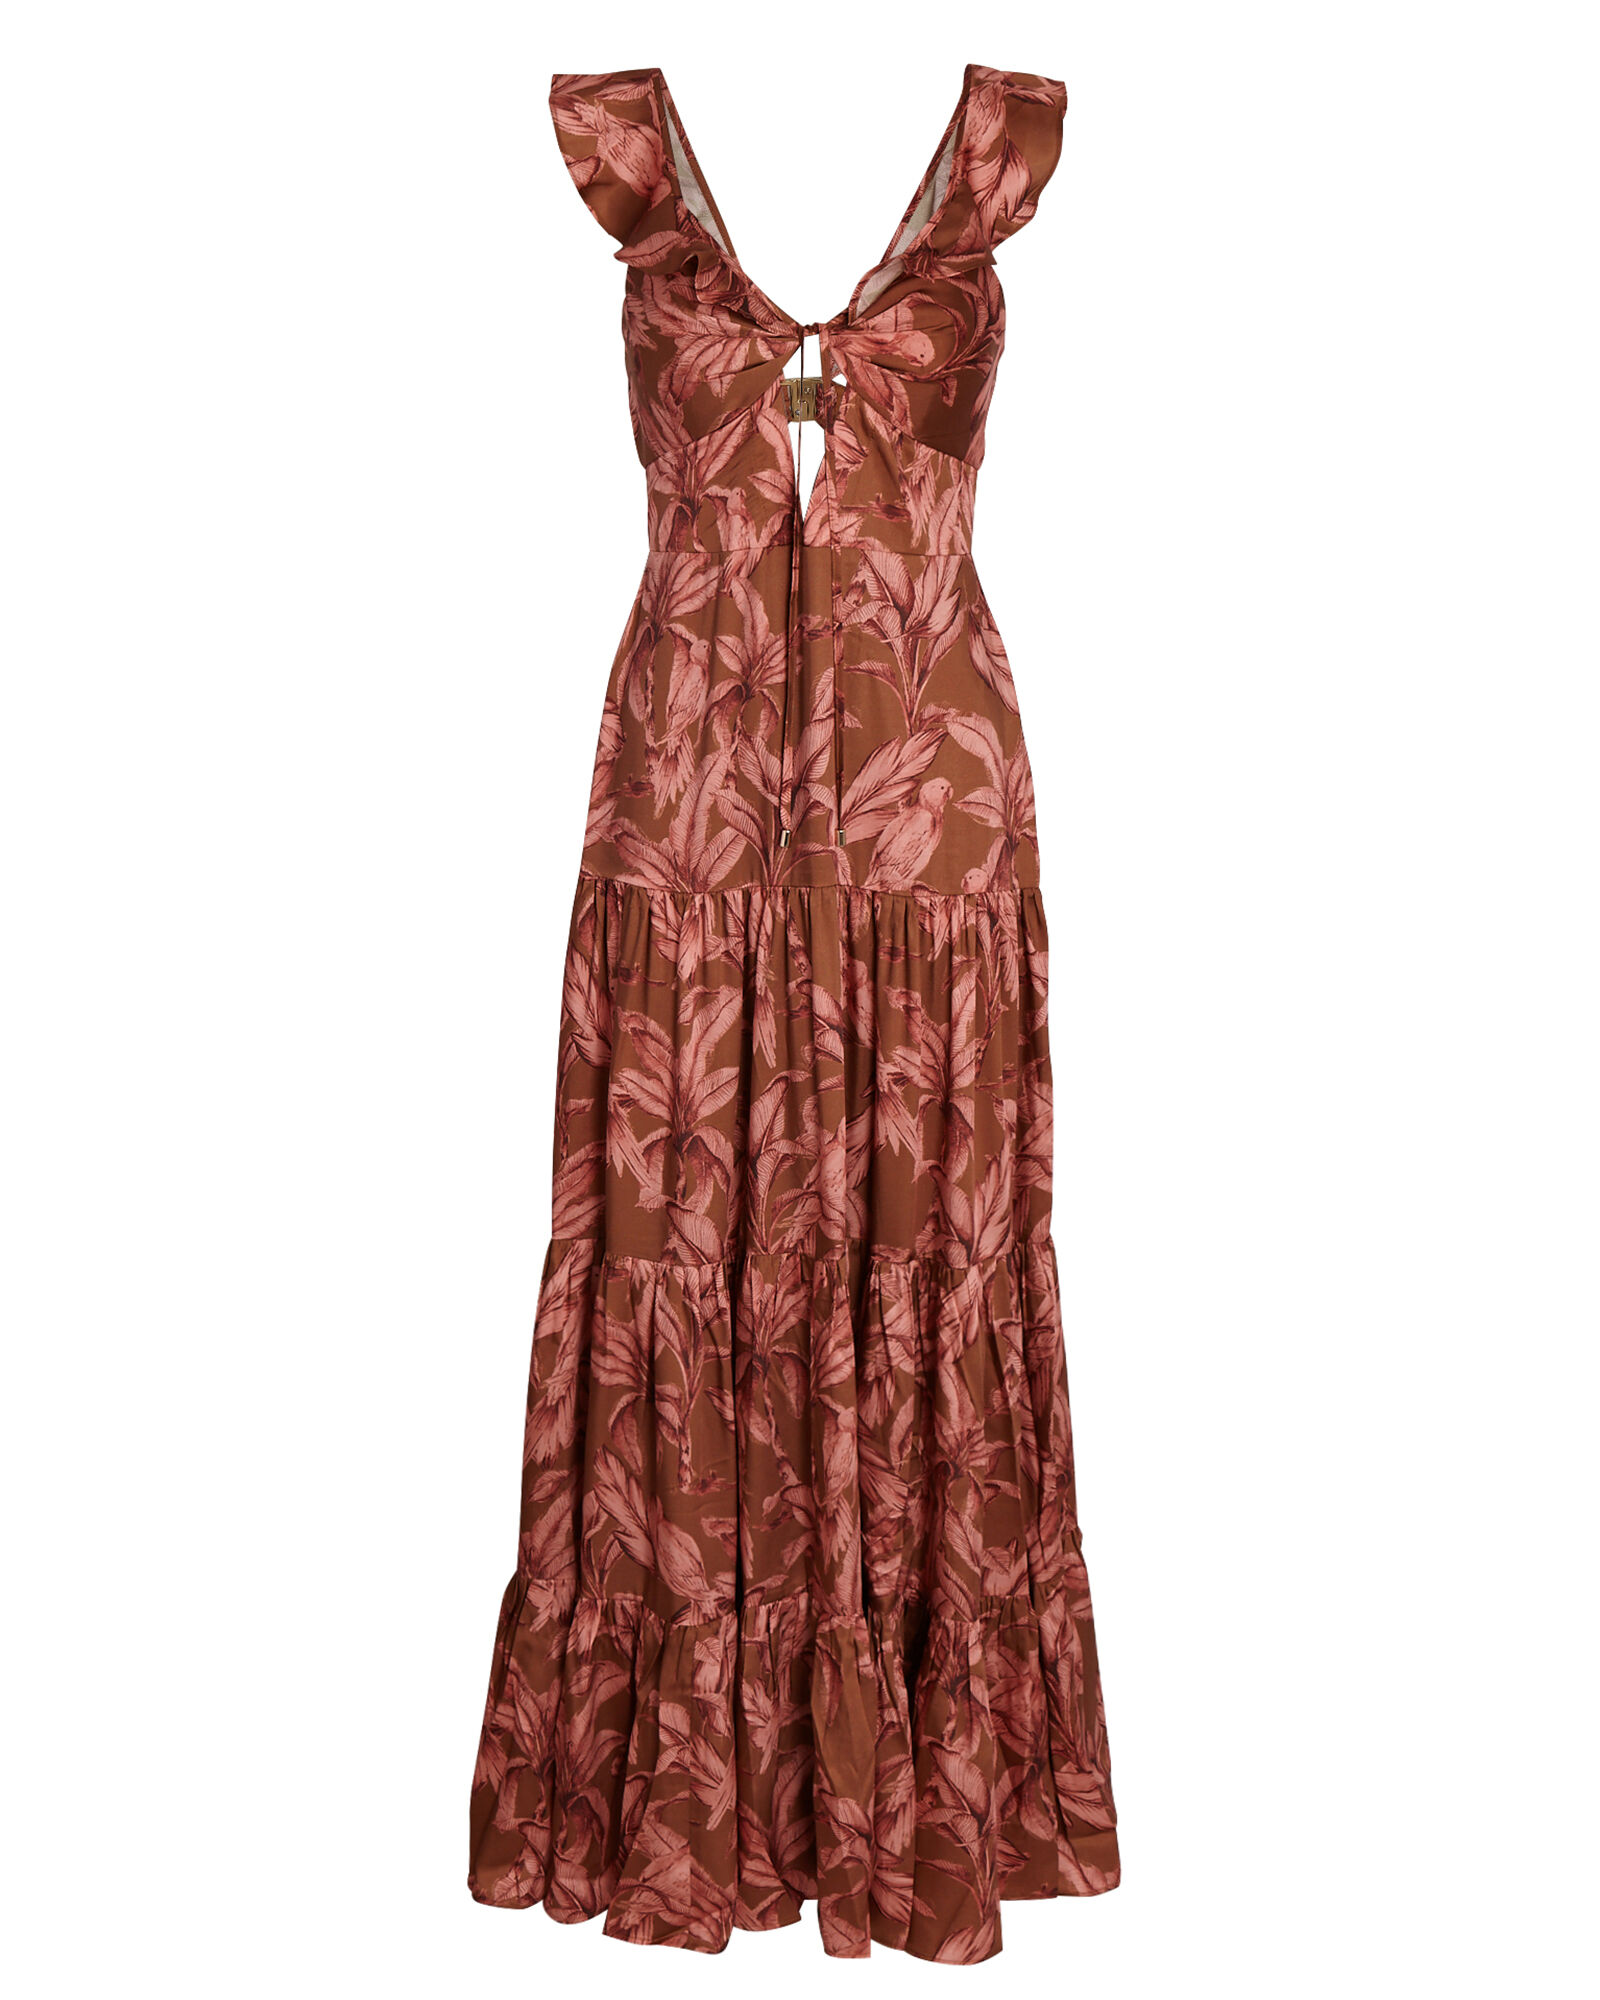 Soller Printed Maxi Dress, BROWN, hi-res